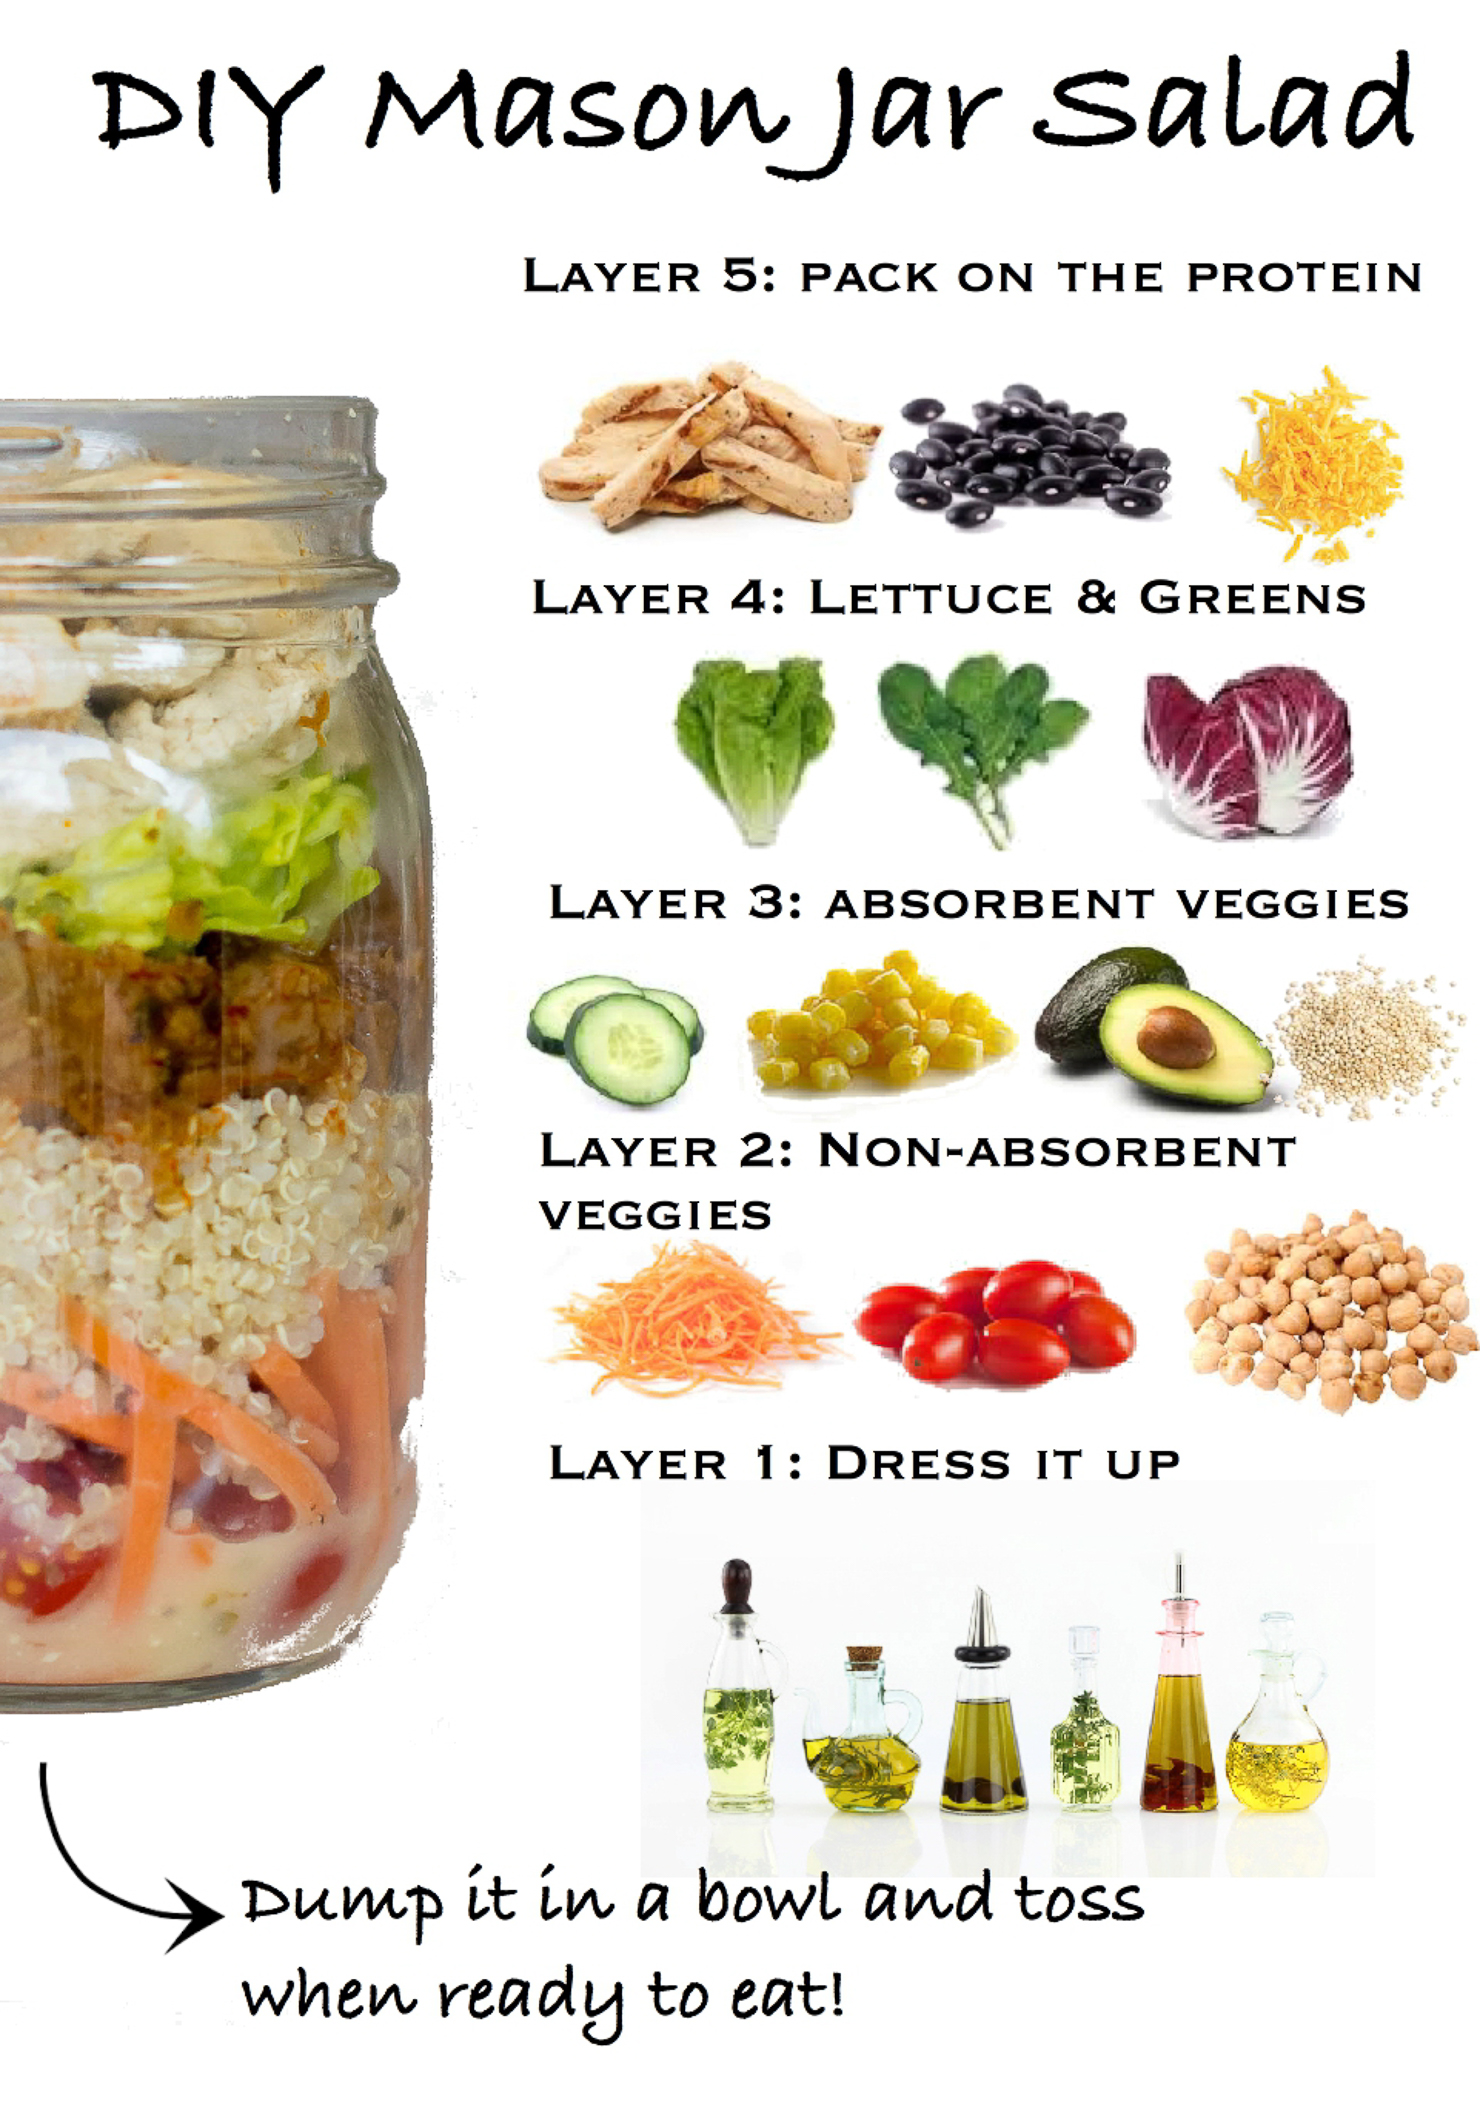 morning-star-diy-mason-jar-salad-meatless-lunch-idea